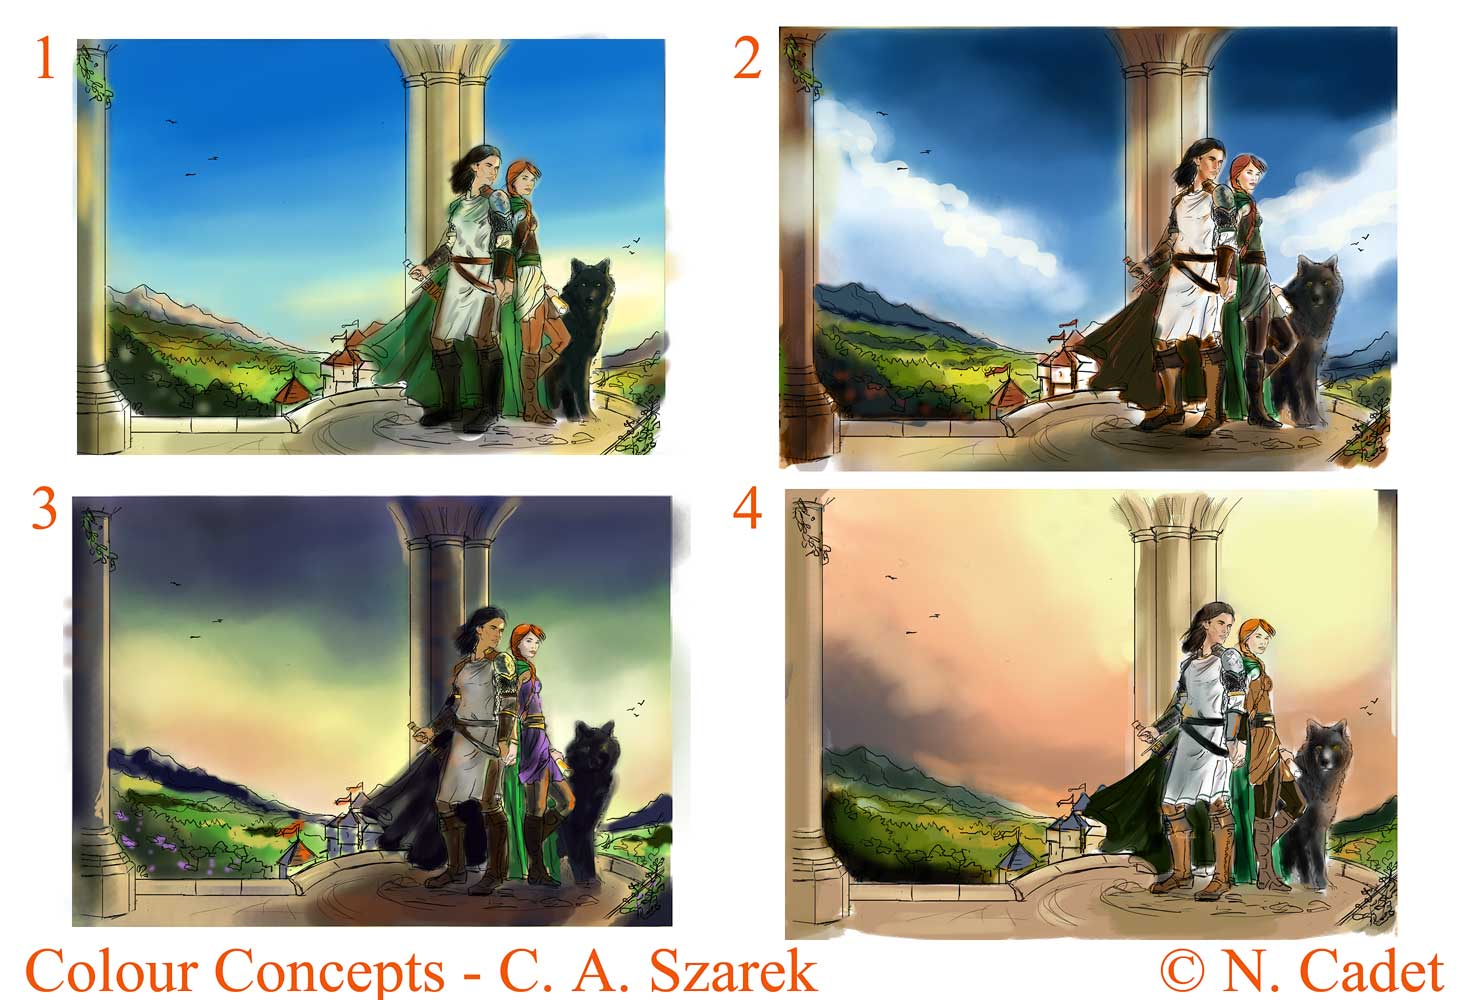 Colour Concepts for Love's Call. Each evokes a slightly different mood